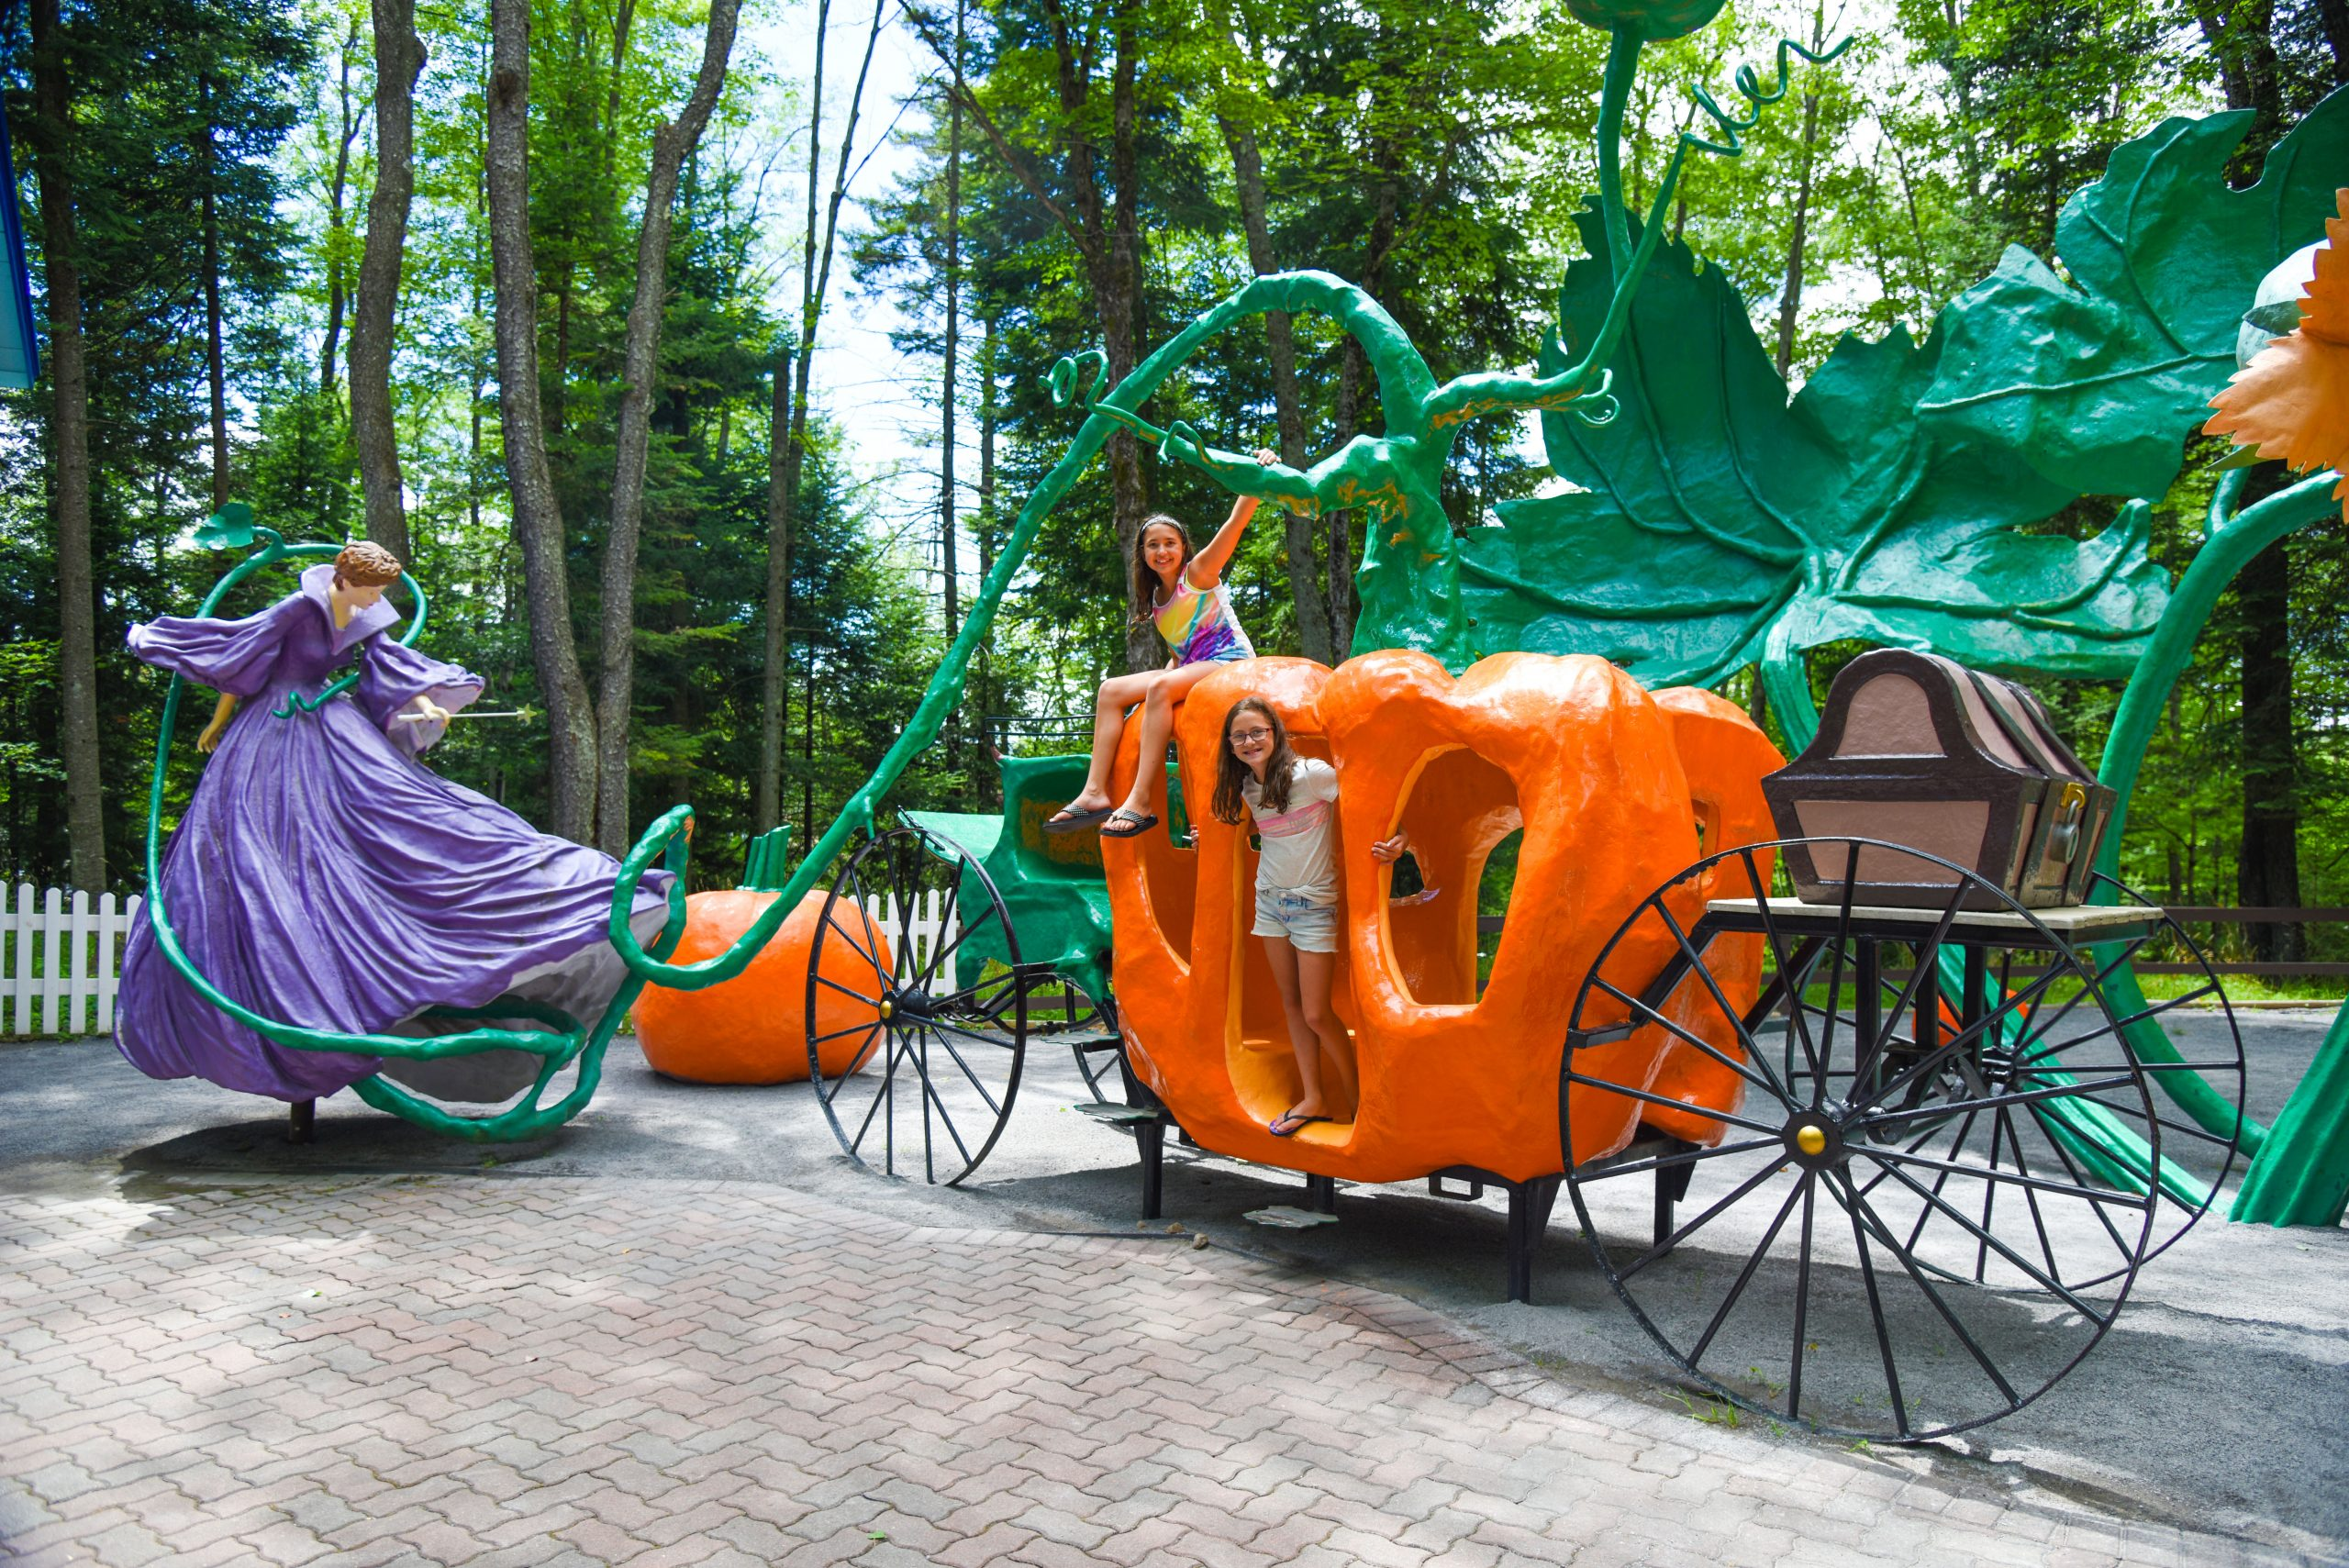 Enchanted Forest Water Safari is more than Rides!